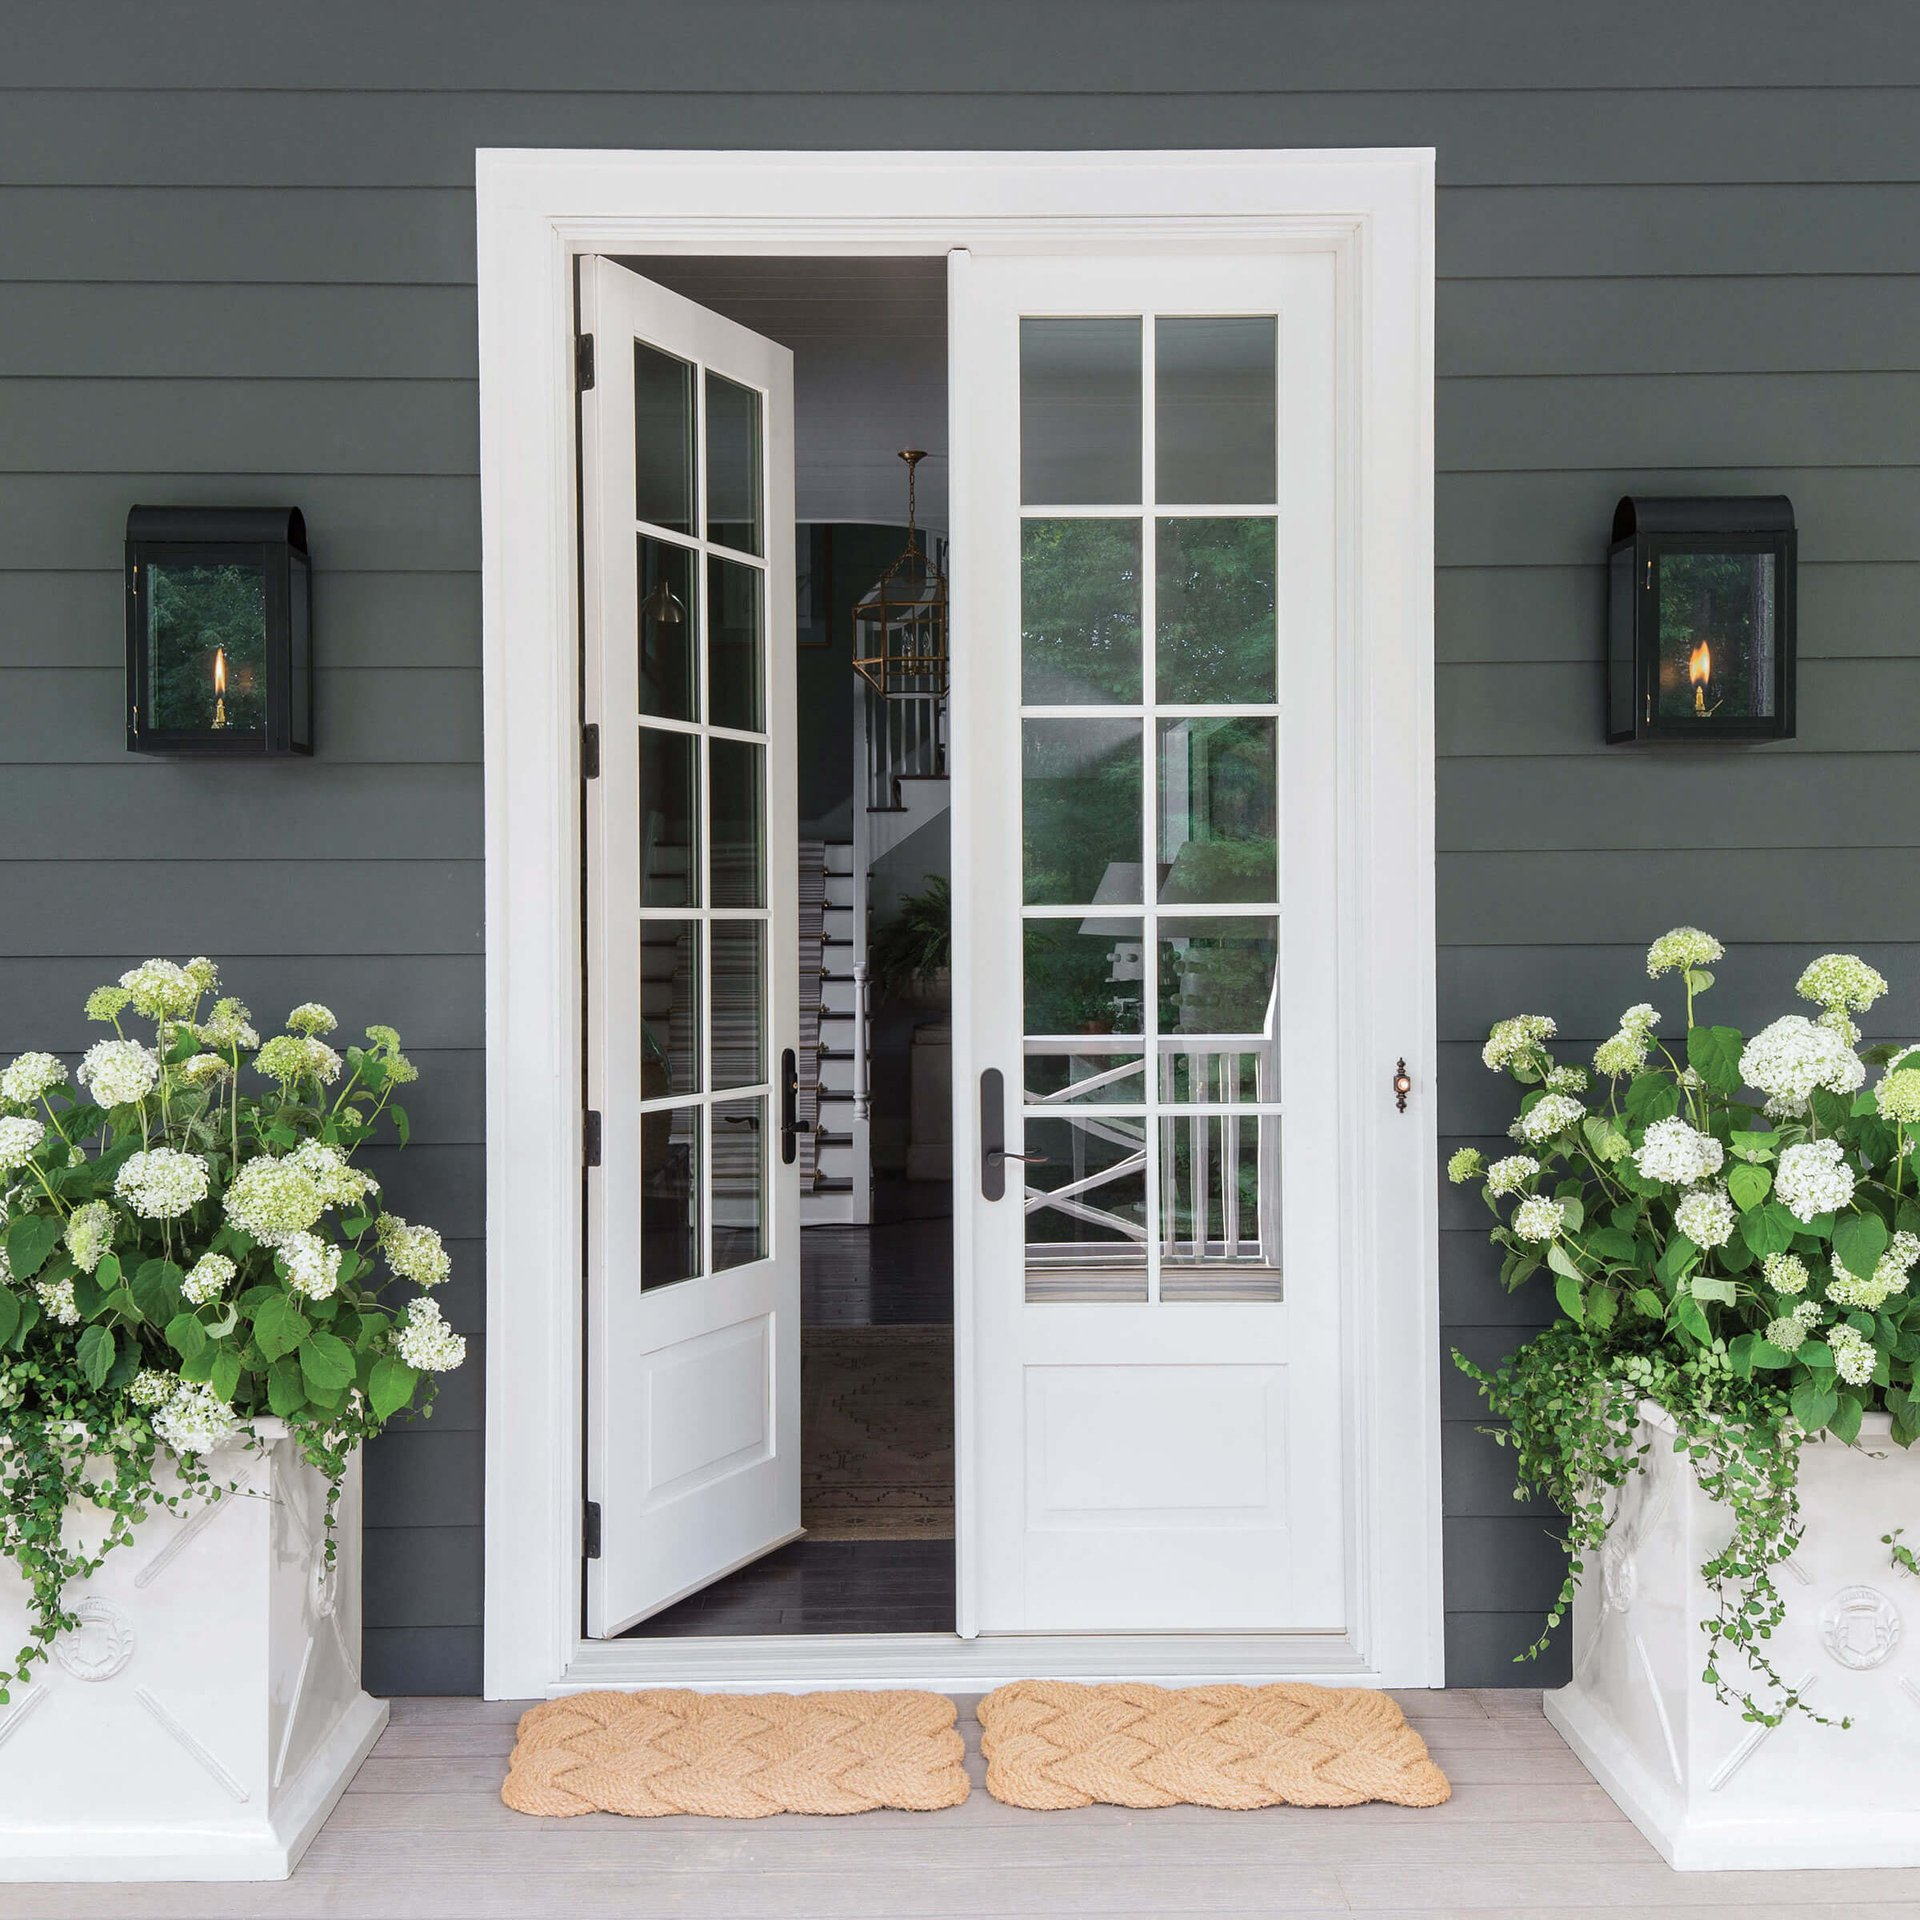 Exterior View Of House Entrance With An Open Signature Ultimate Swinging French Door